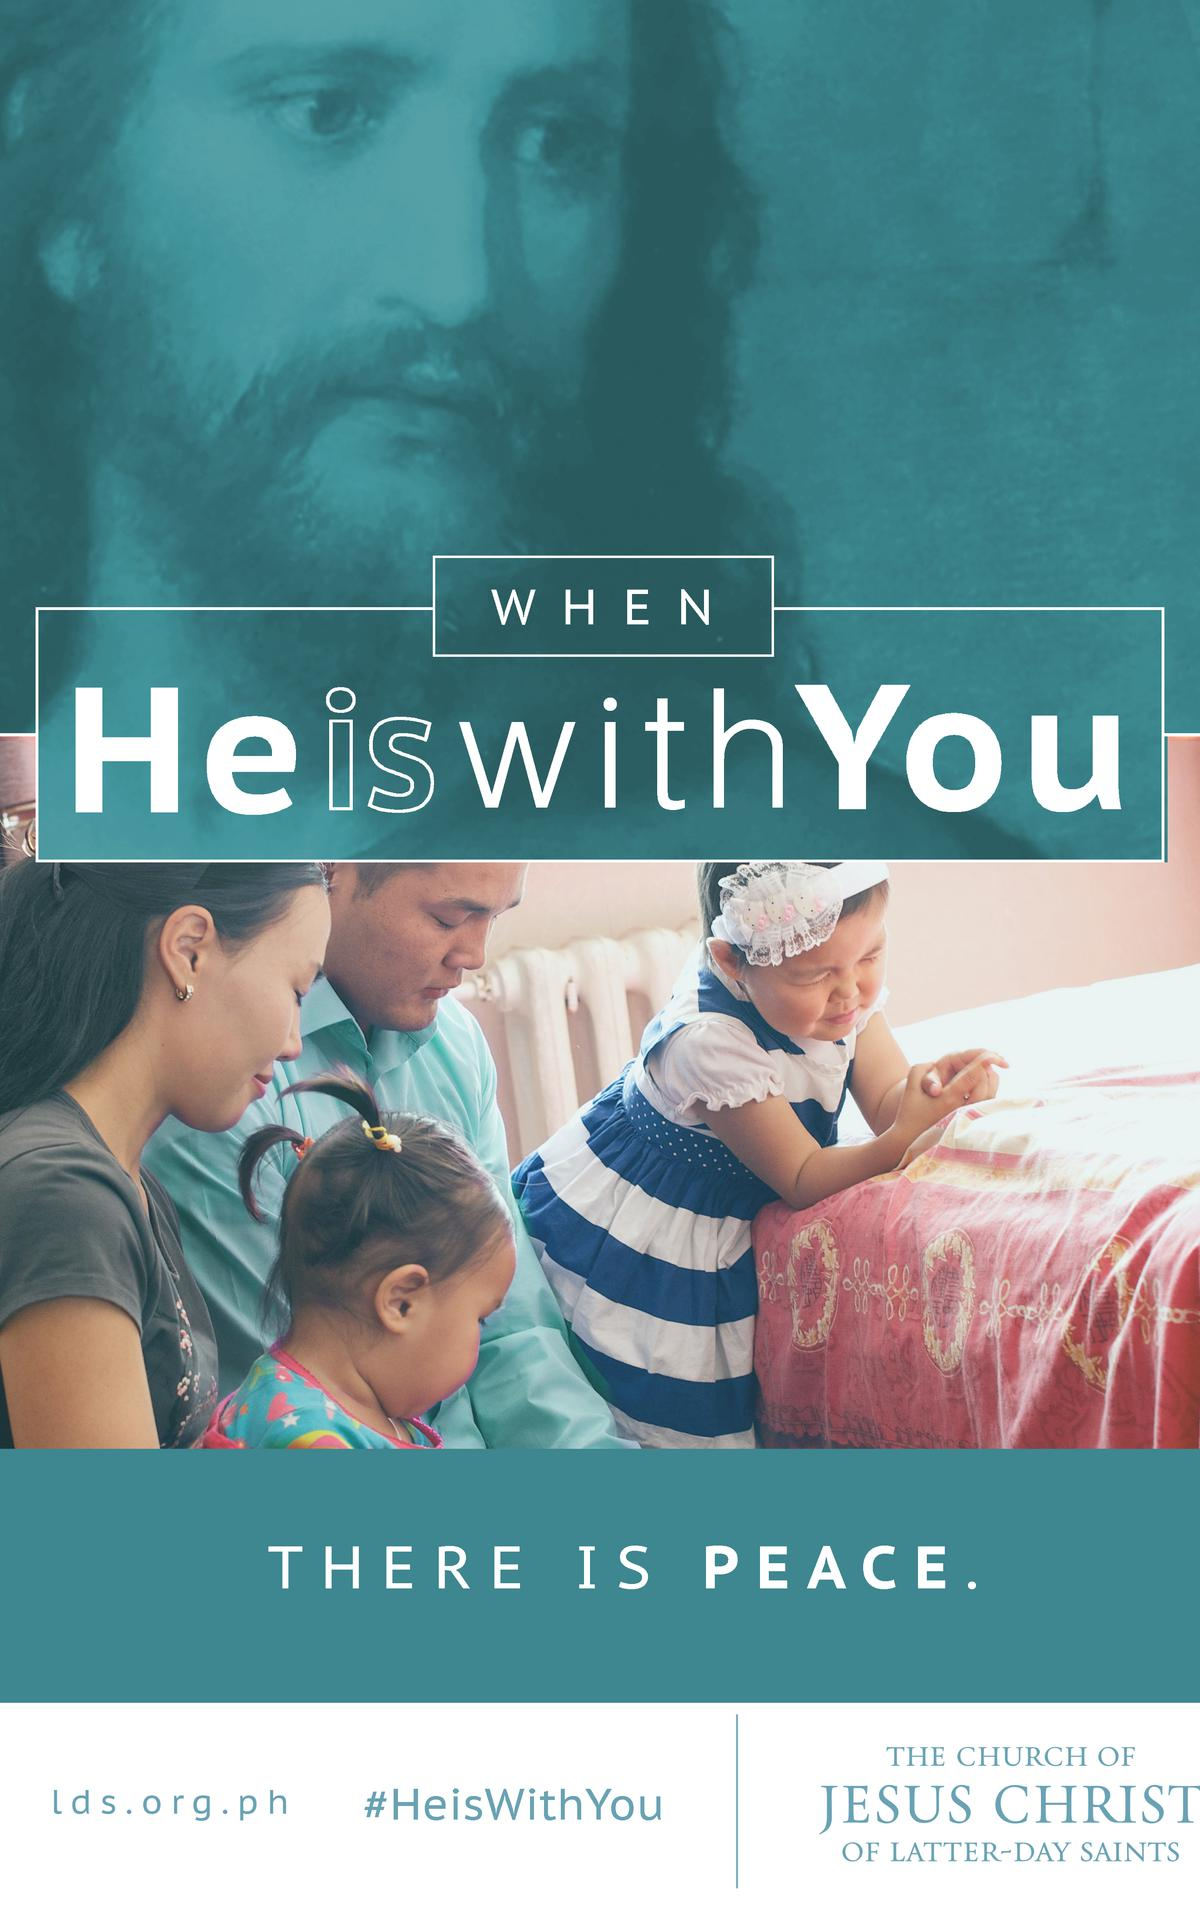 When He is with you there is peace